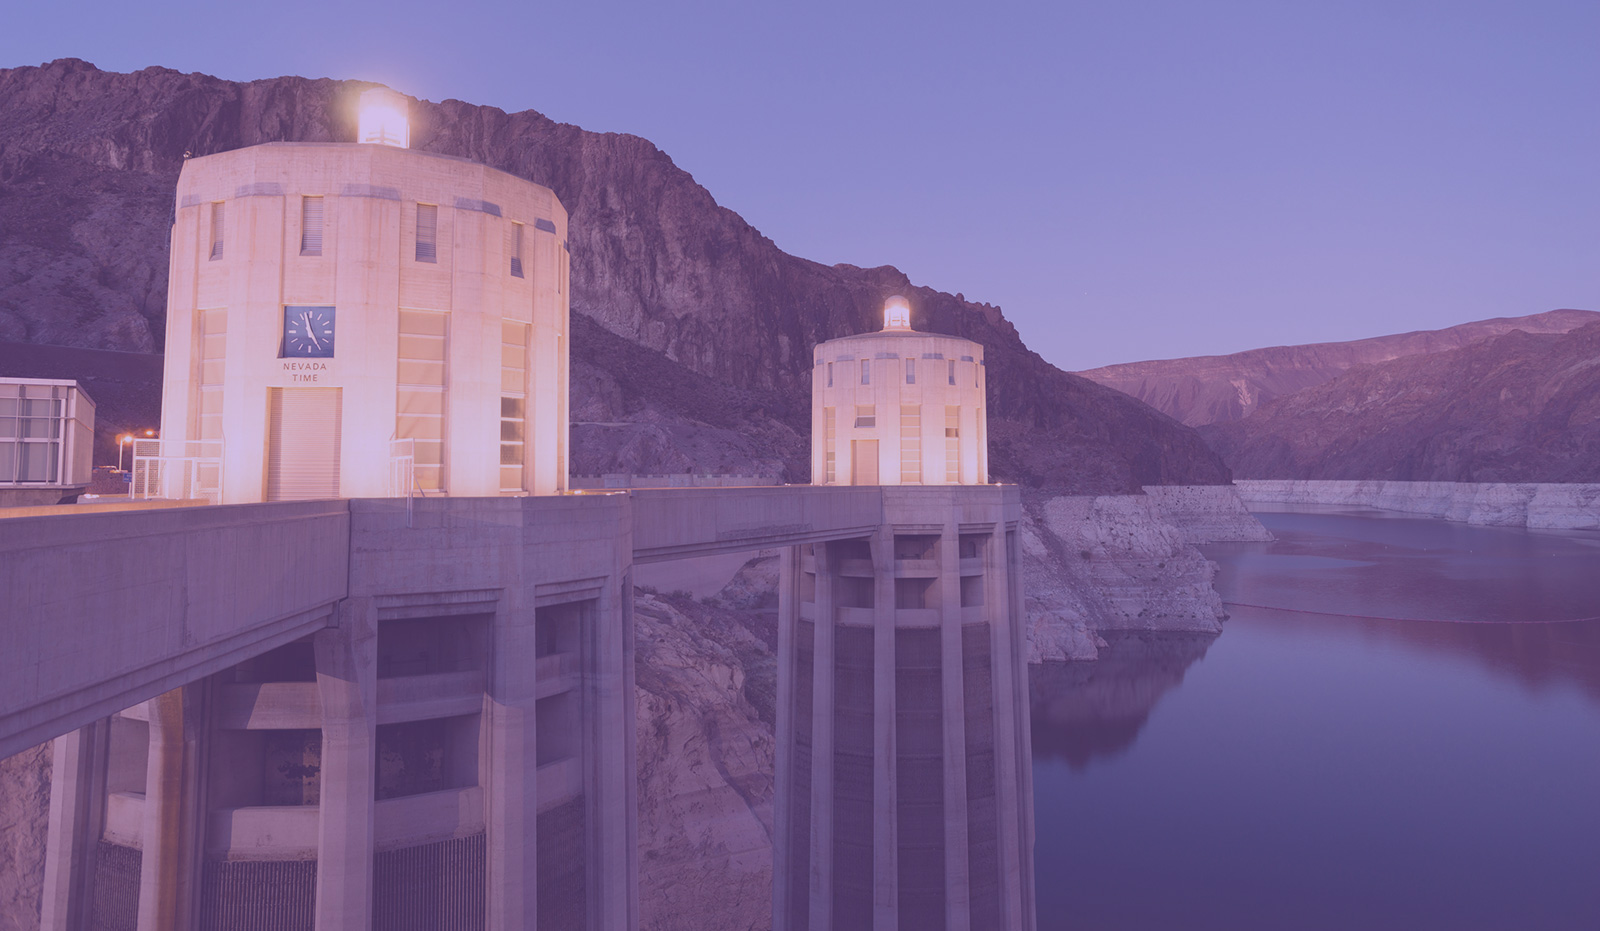 Lake Mead | Directions, Activities, Lodging, and History